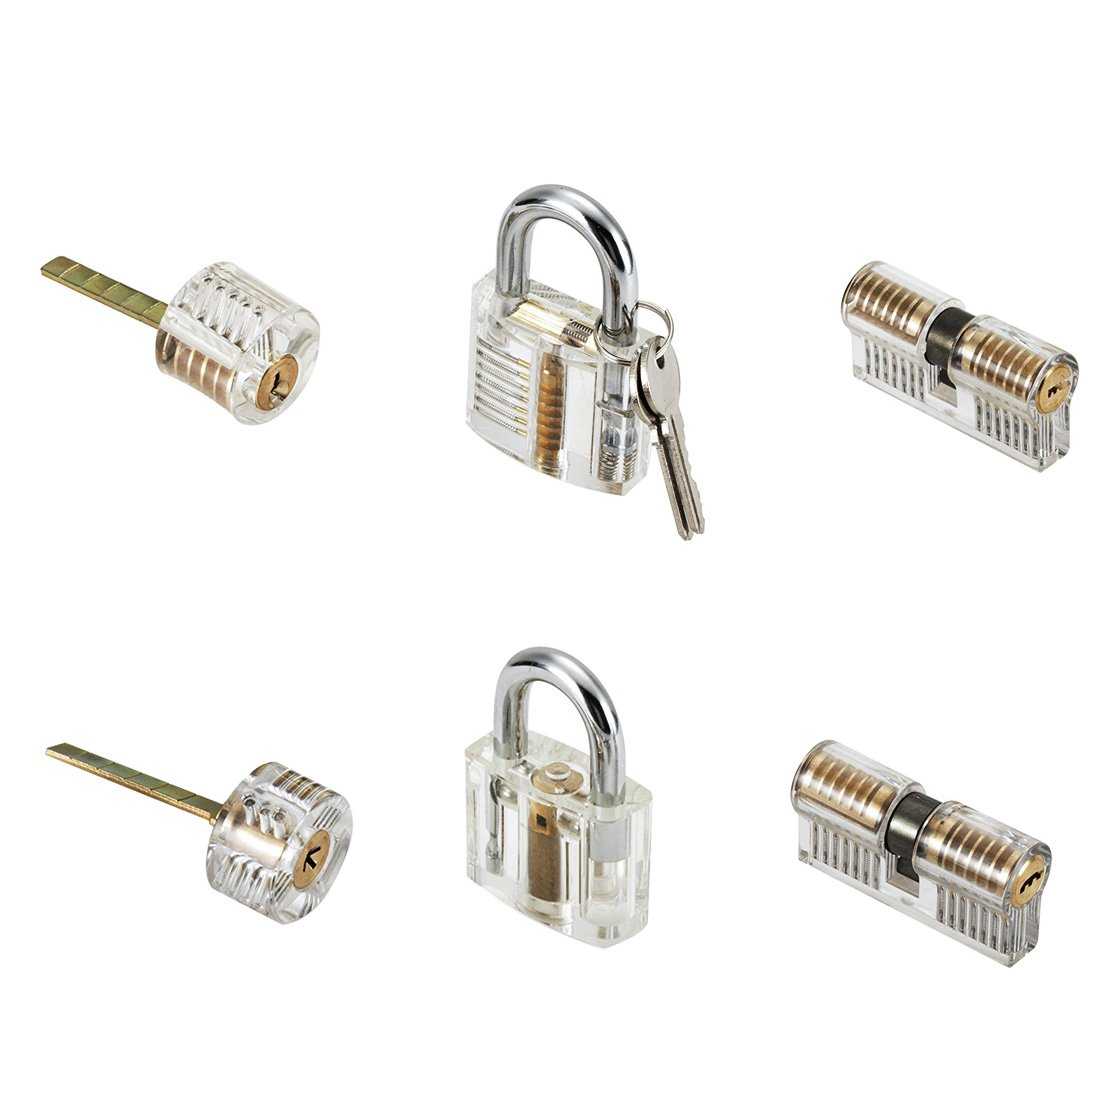 MICG 6pcs Transparent Lock View of Both End Practice 7Pin Pick Training Door Lock Skill 2Keys Set For Beginner